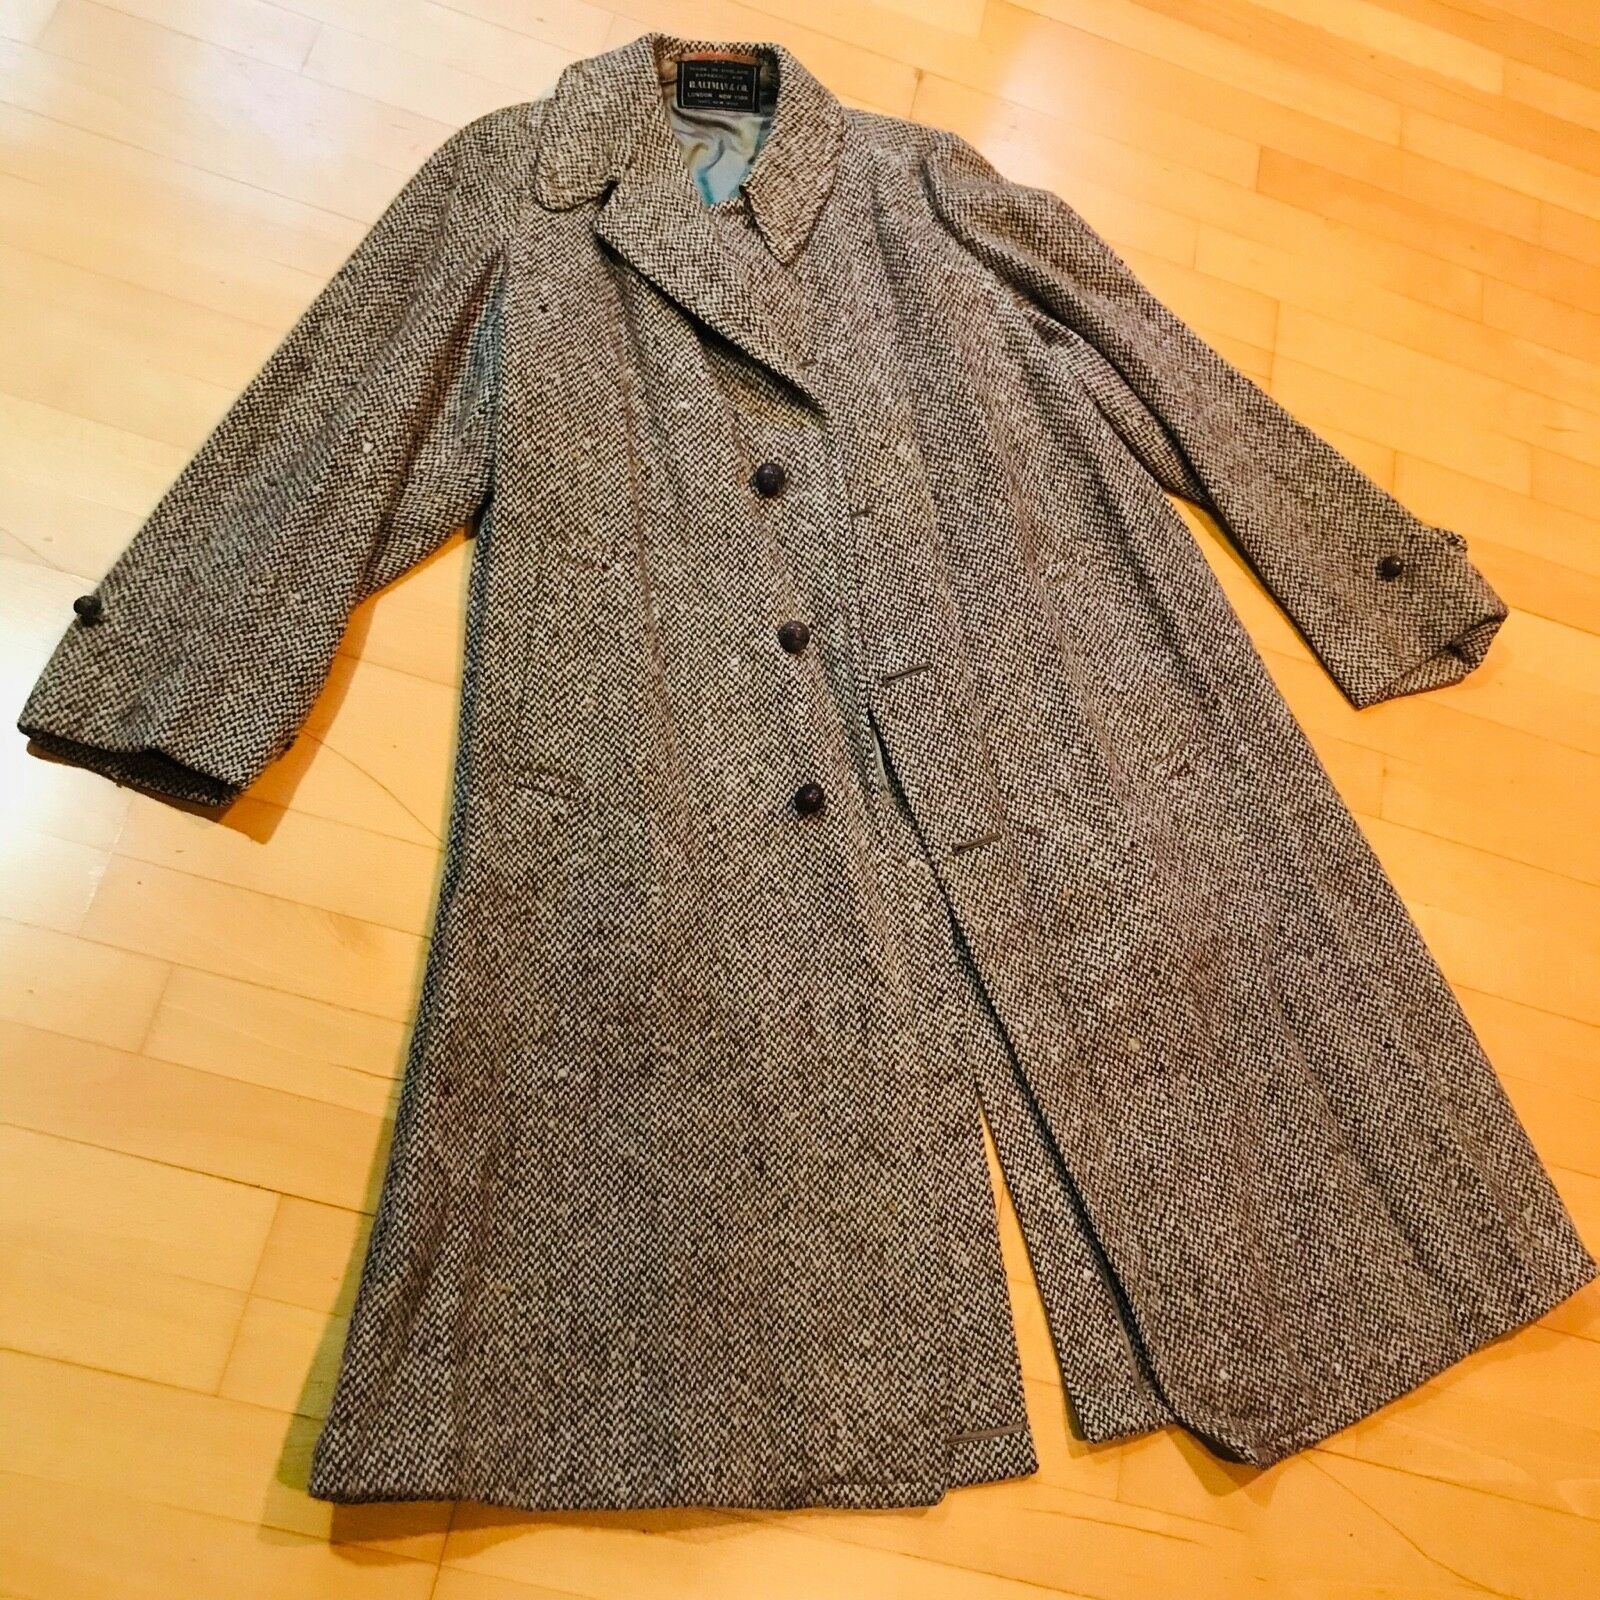 Baltman & Co. Coat 100% Wool Made in England Full Length Winter Coat Grey Tweed